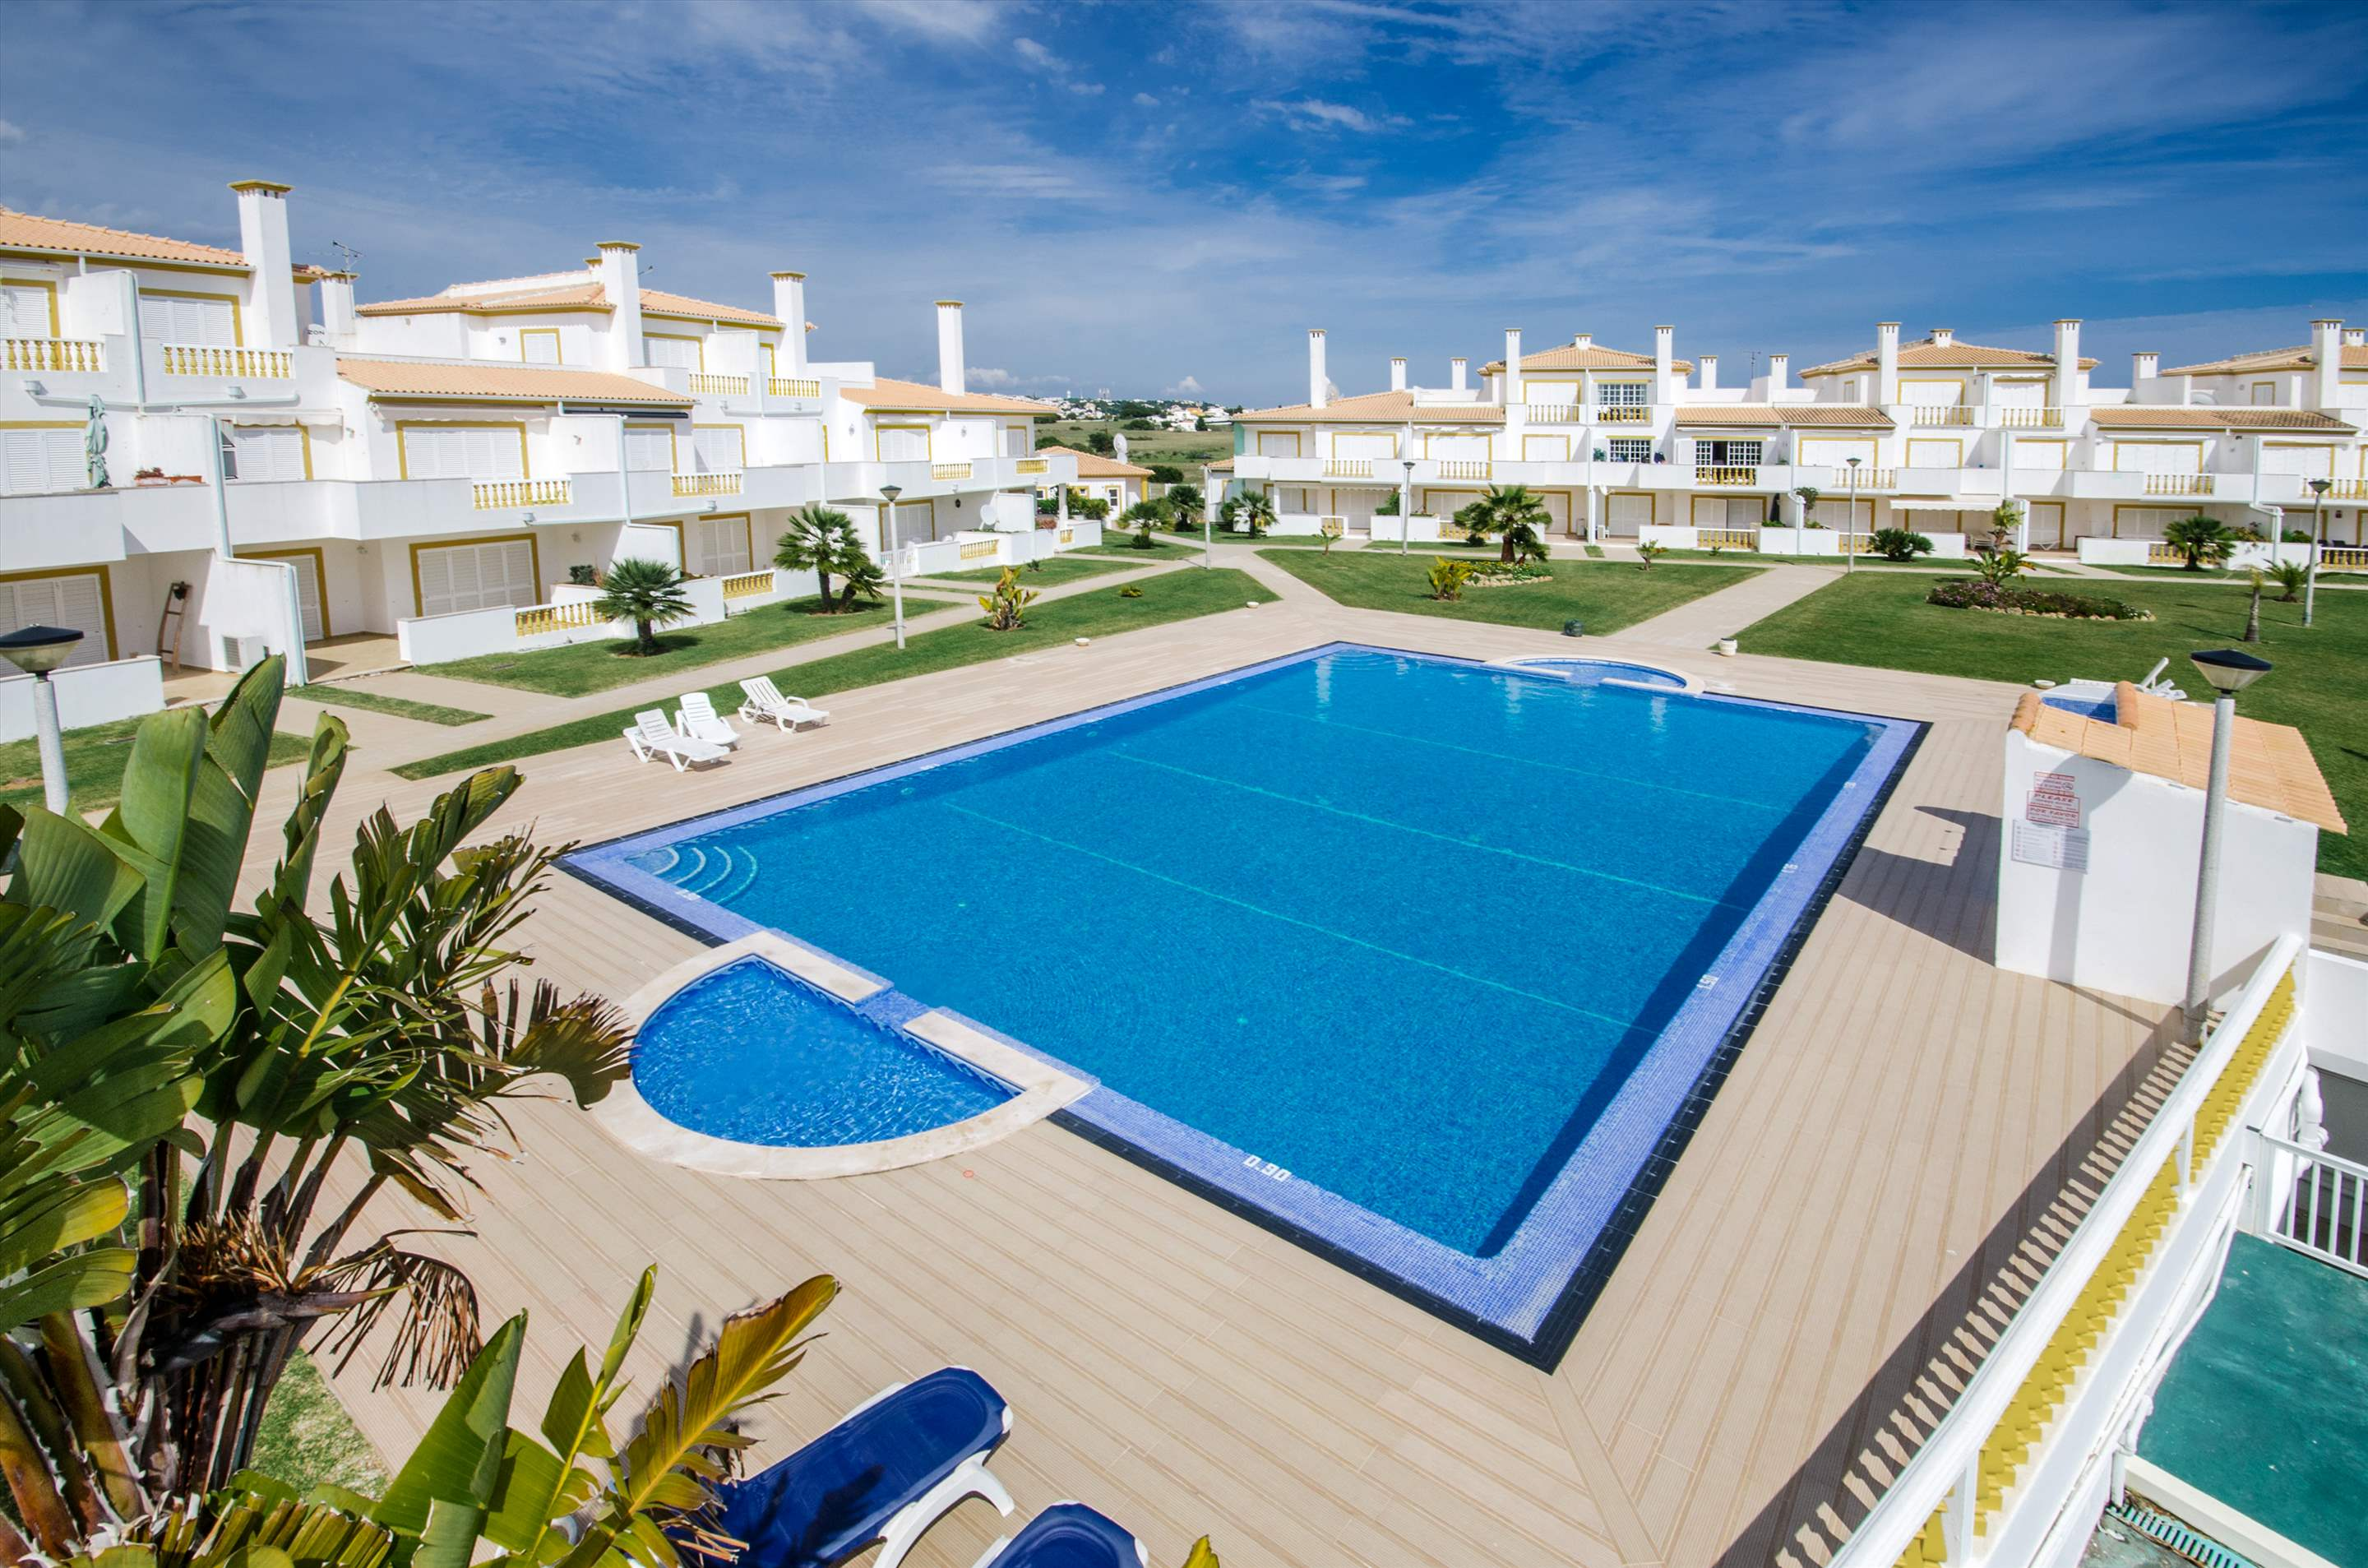 Apt O Monte, For Up to 4 Persons, 2 bedroom apartment in Gale, Vale da Parra and Guia, Algarve Photo #2